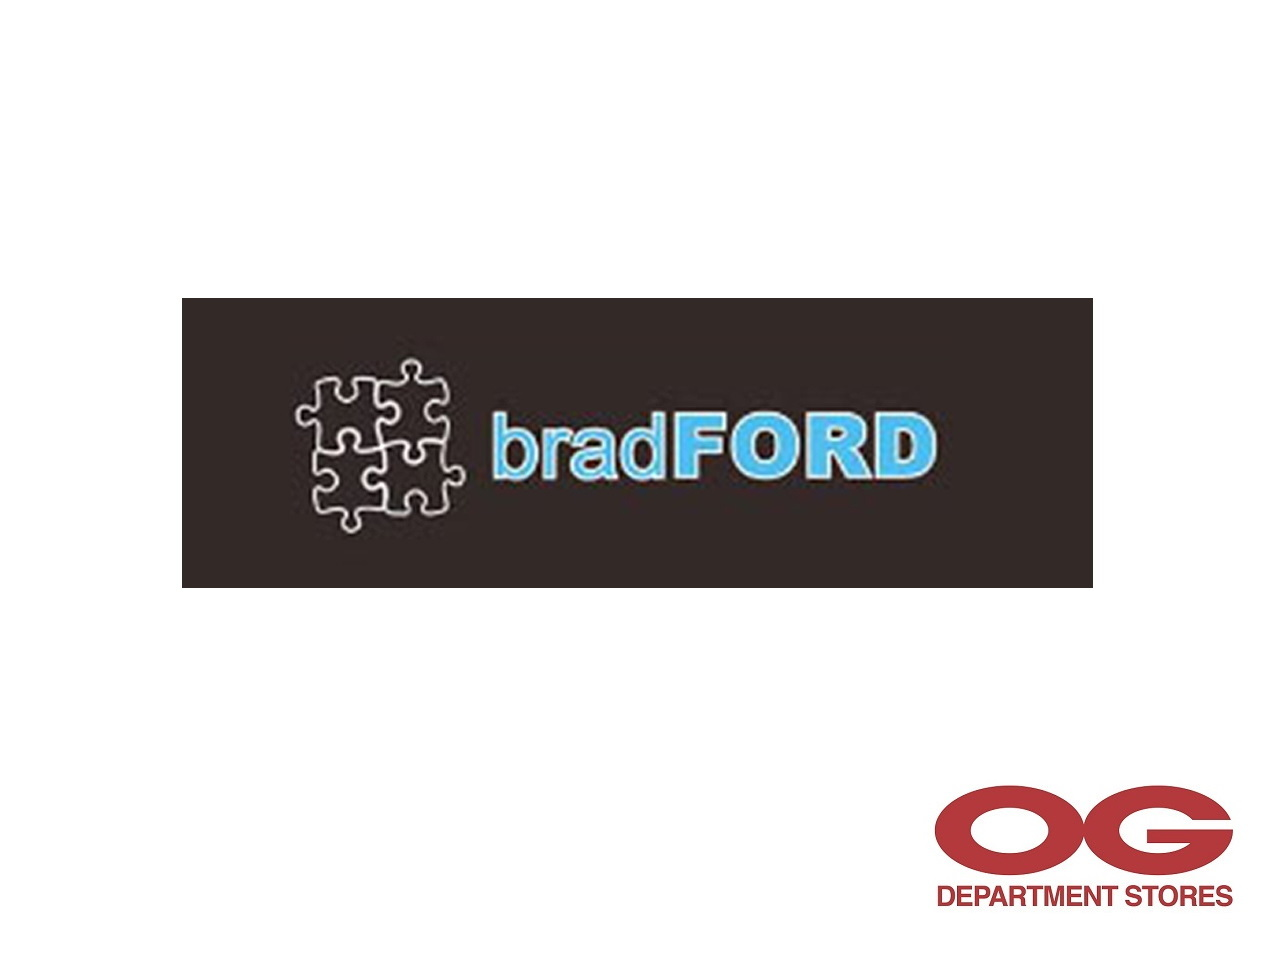 bradFORD All Regular-Priced Men's Apparel & Accessories @ 20% + 20% off